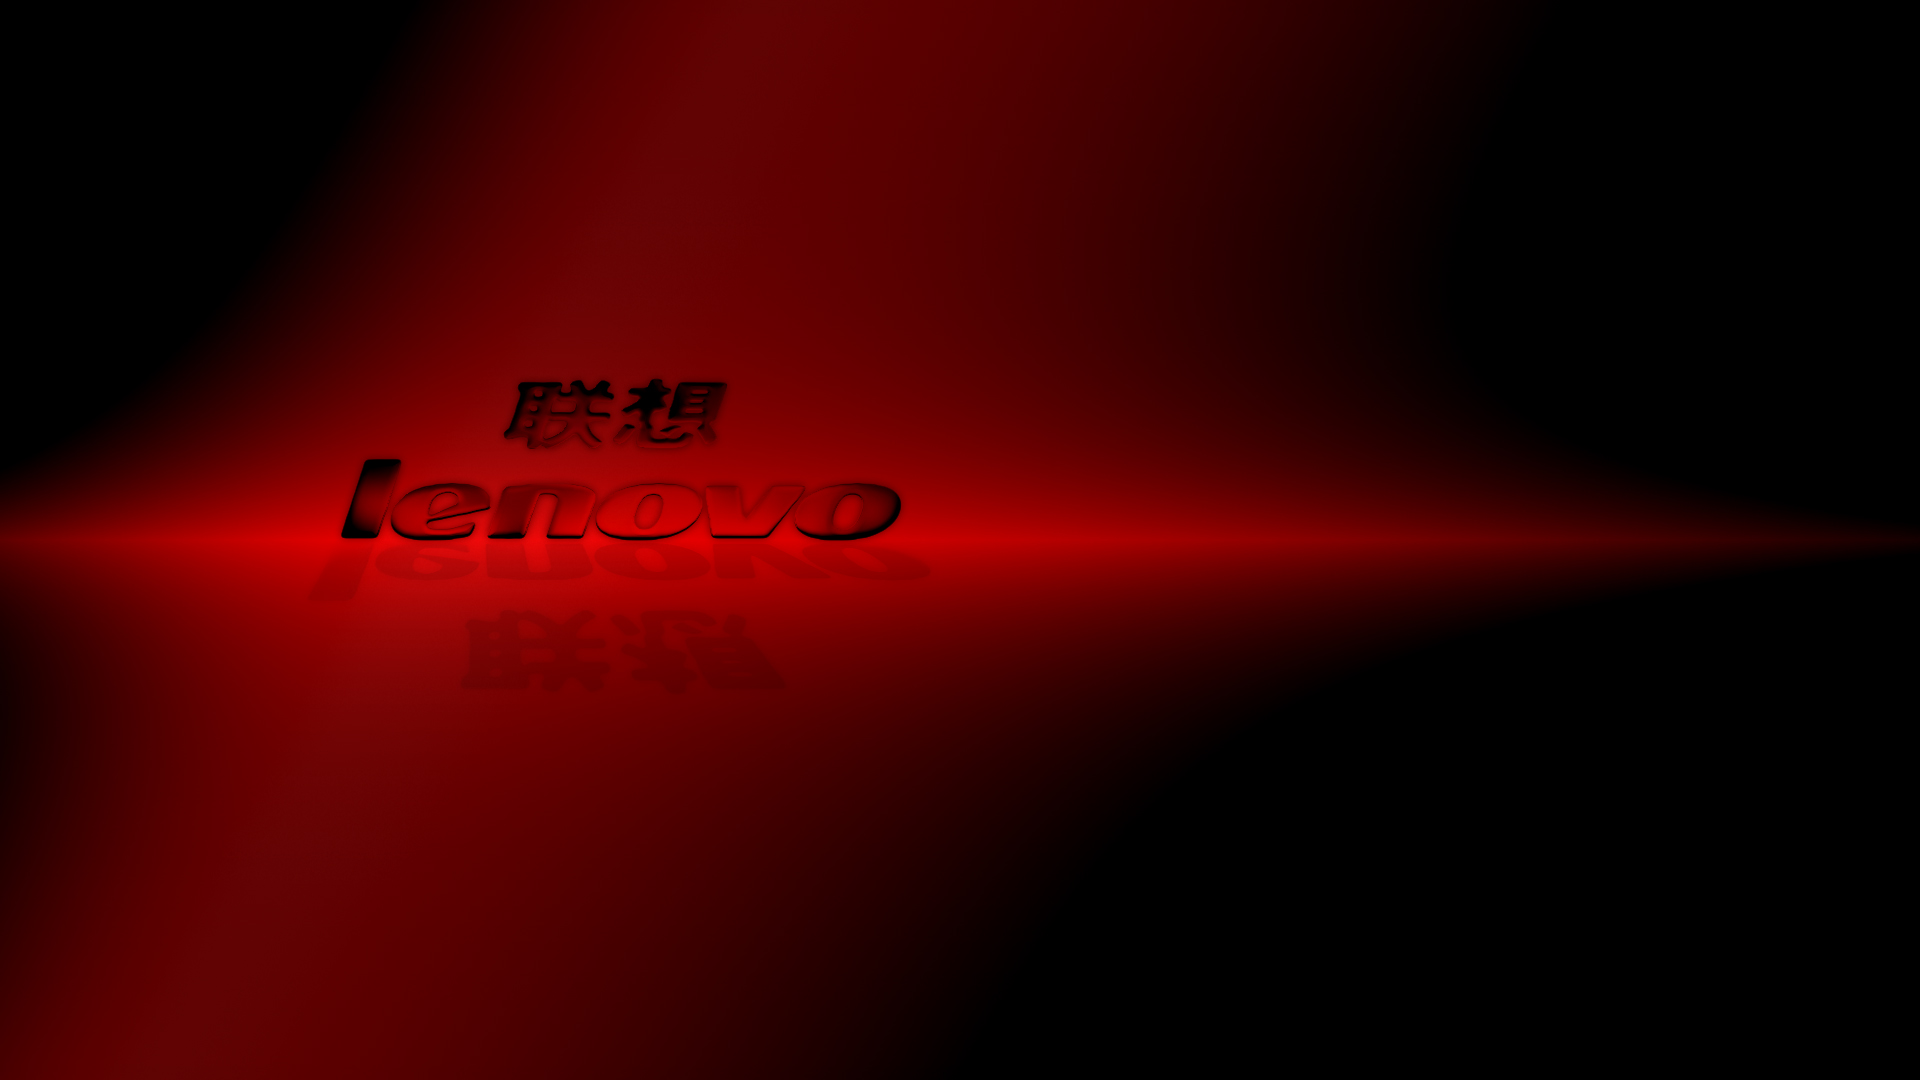 lenovo wallpaper hd for laptop